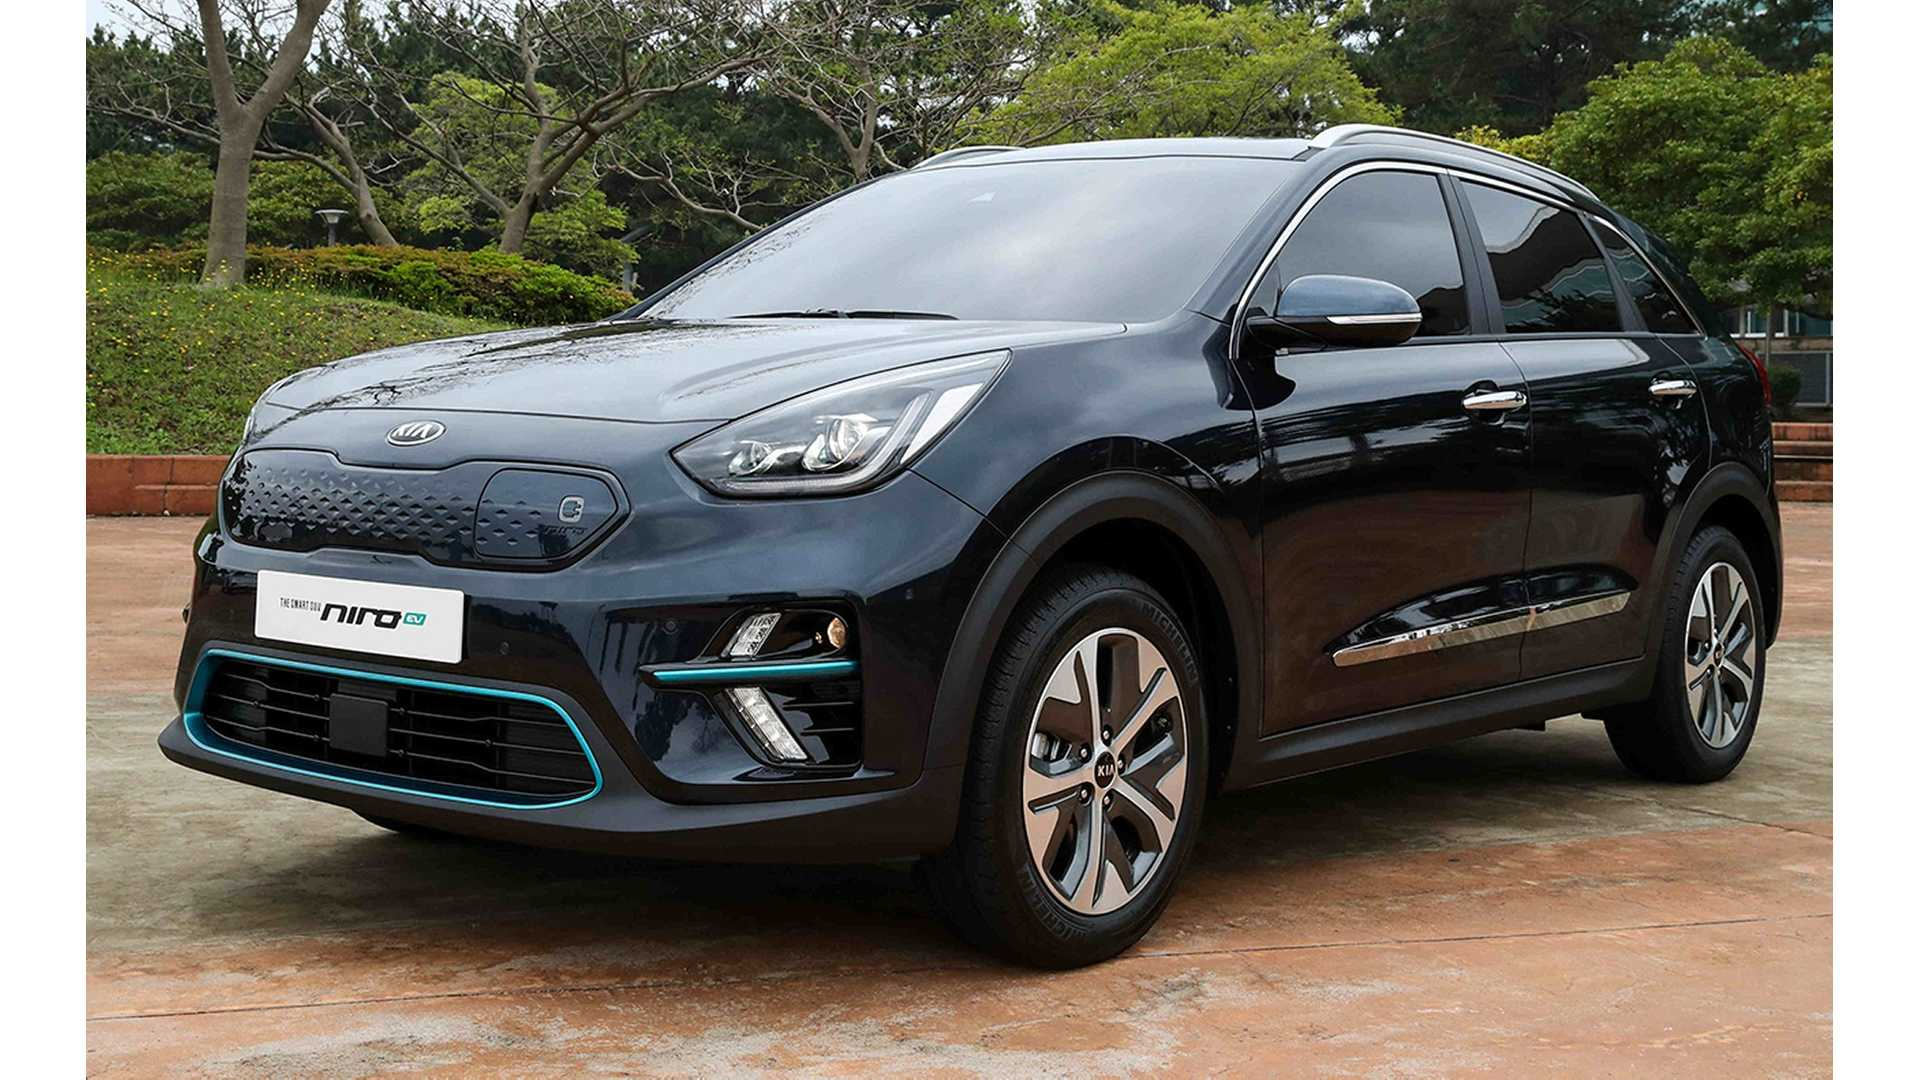 14 Best Review 2019 Kia Niro Ev Release Date Performance for 2019 Kia Niro Ev Release Date